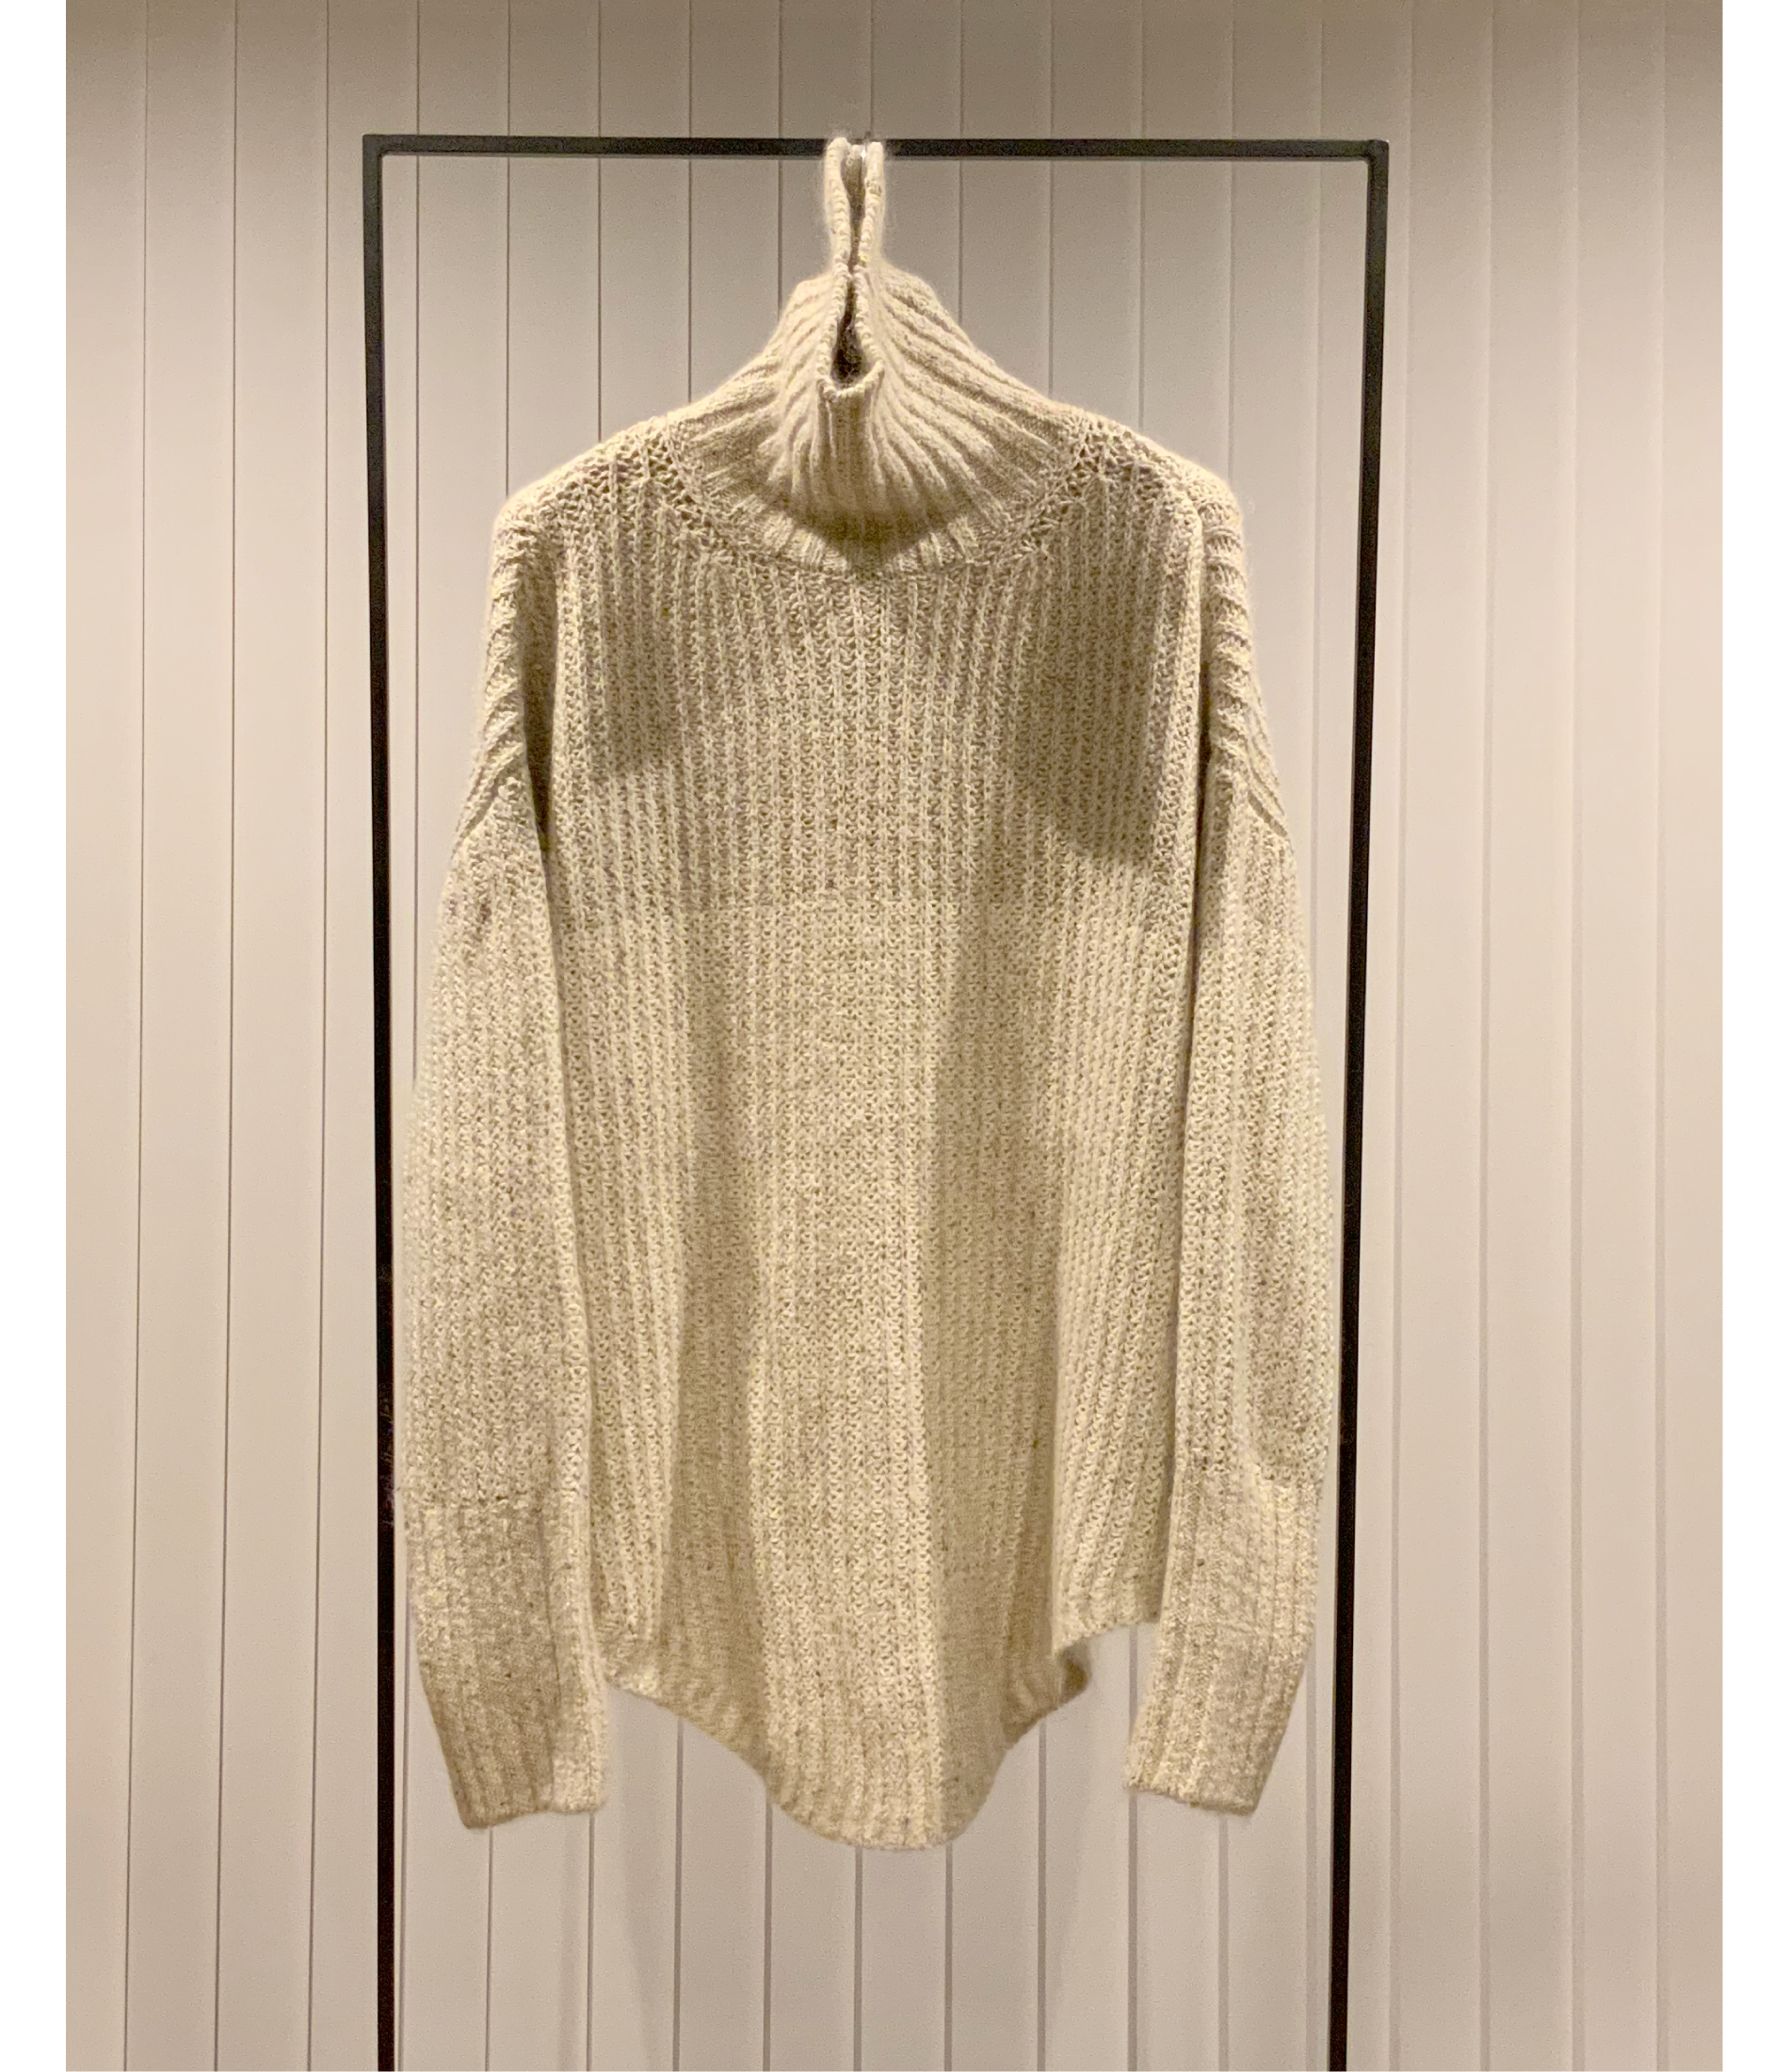 2-Toned High-neck Sweater / Ivory